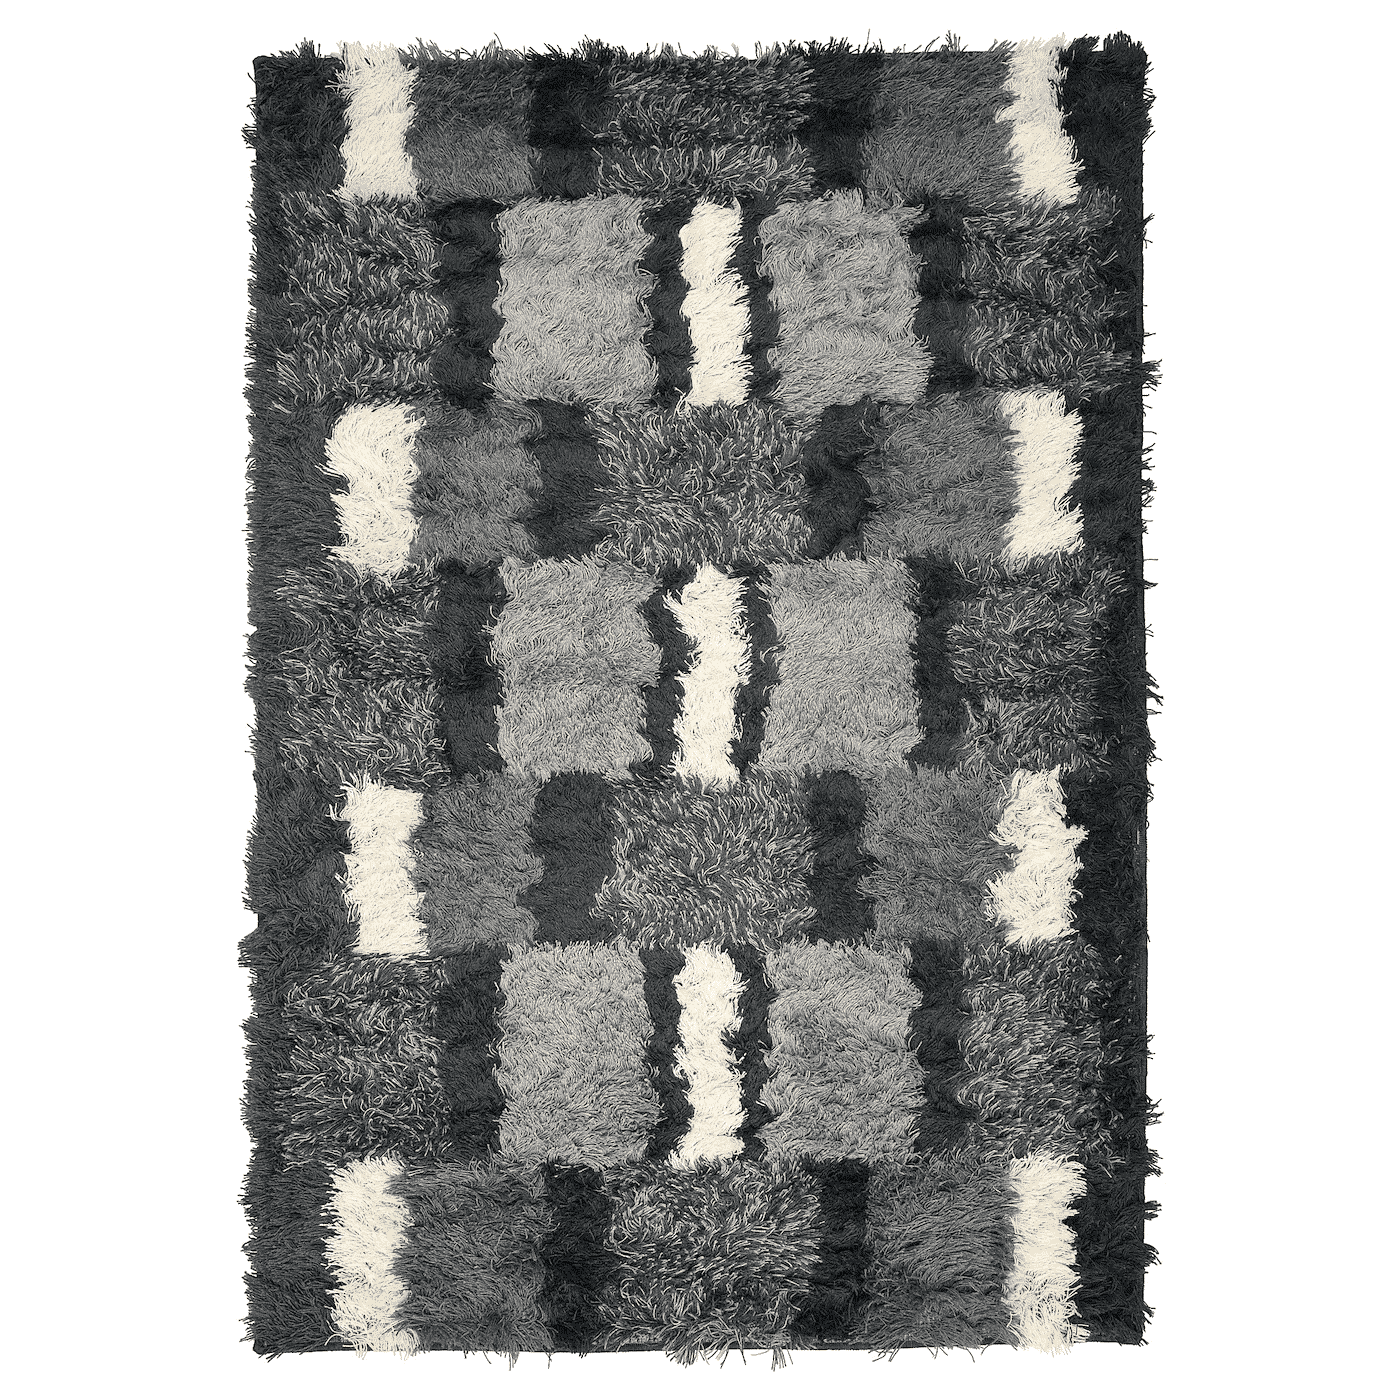 NAUTRUP Rug, high pile, multicolor